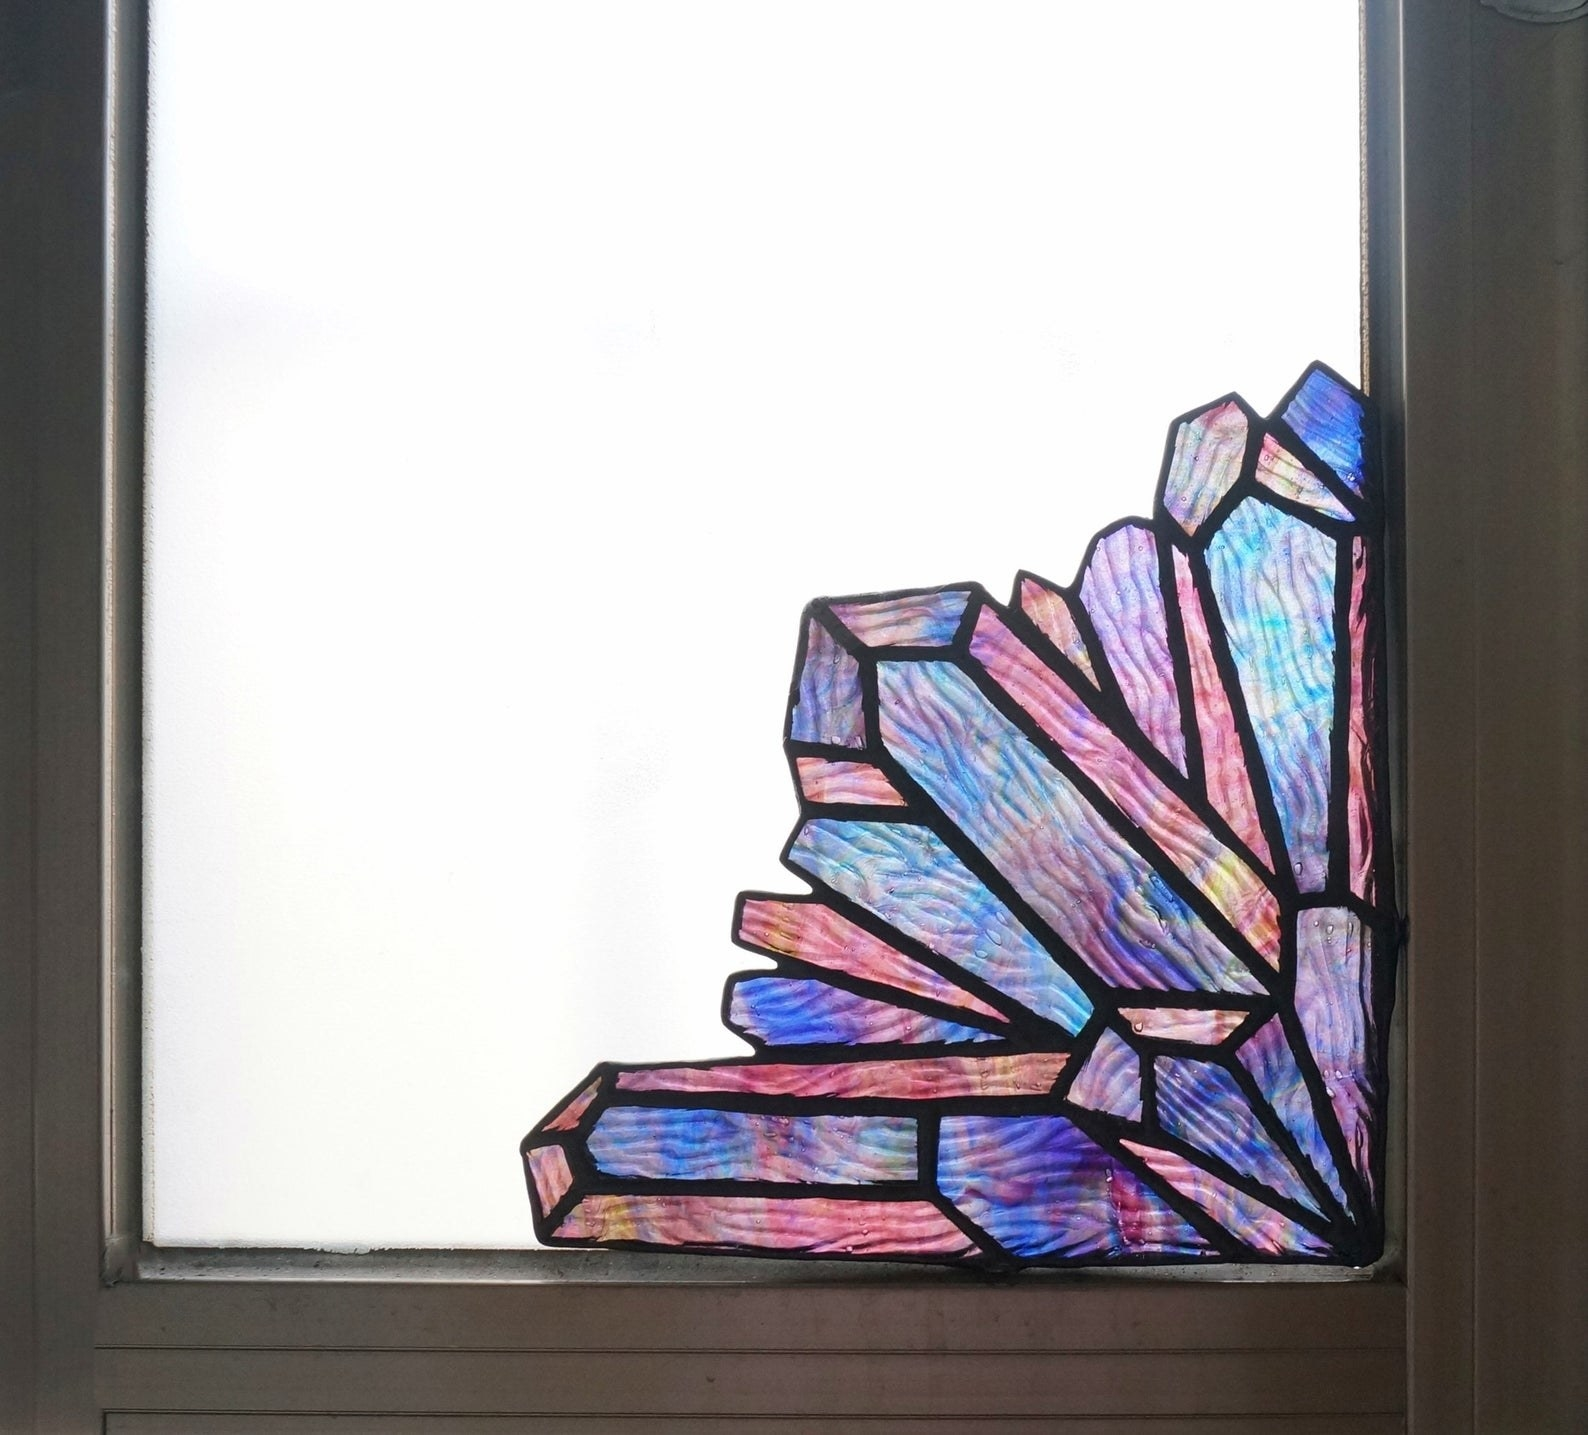 the iridescent glass crystal corner piece in the corner of a window